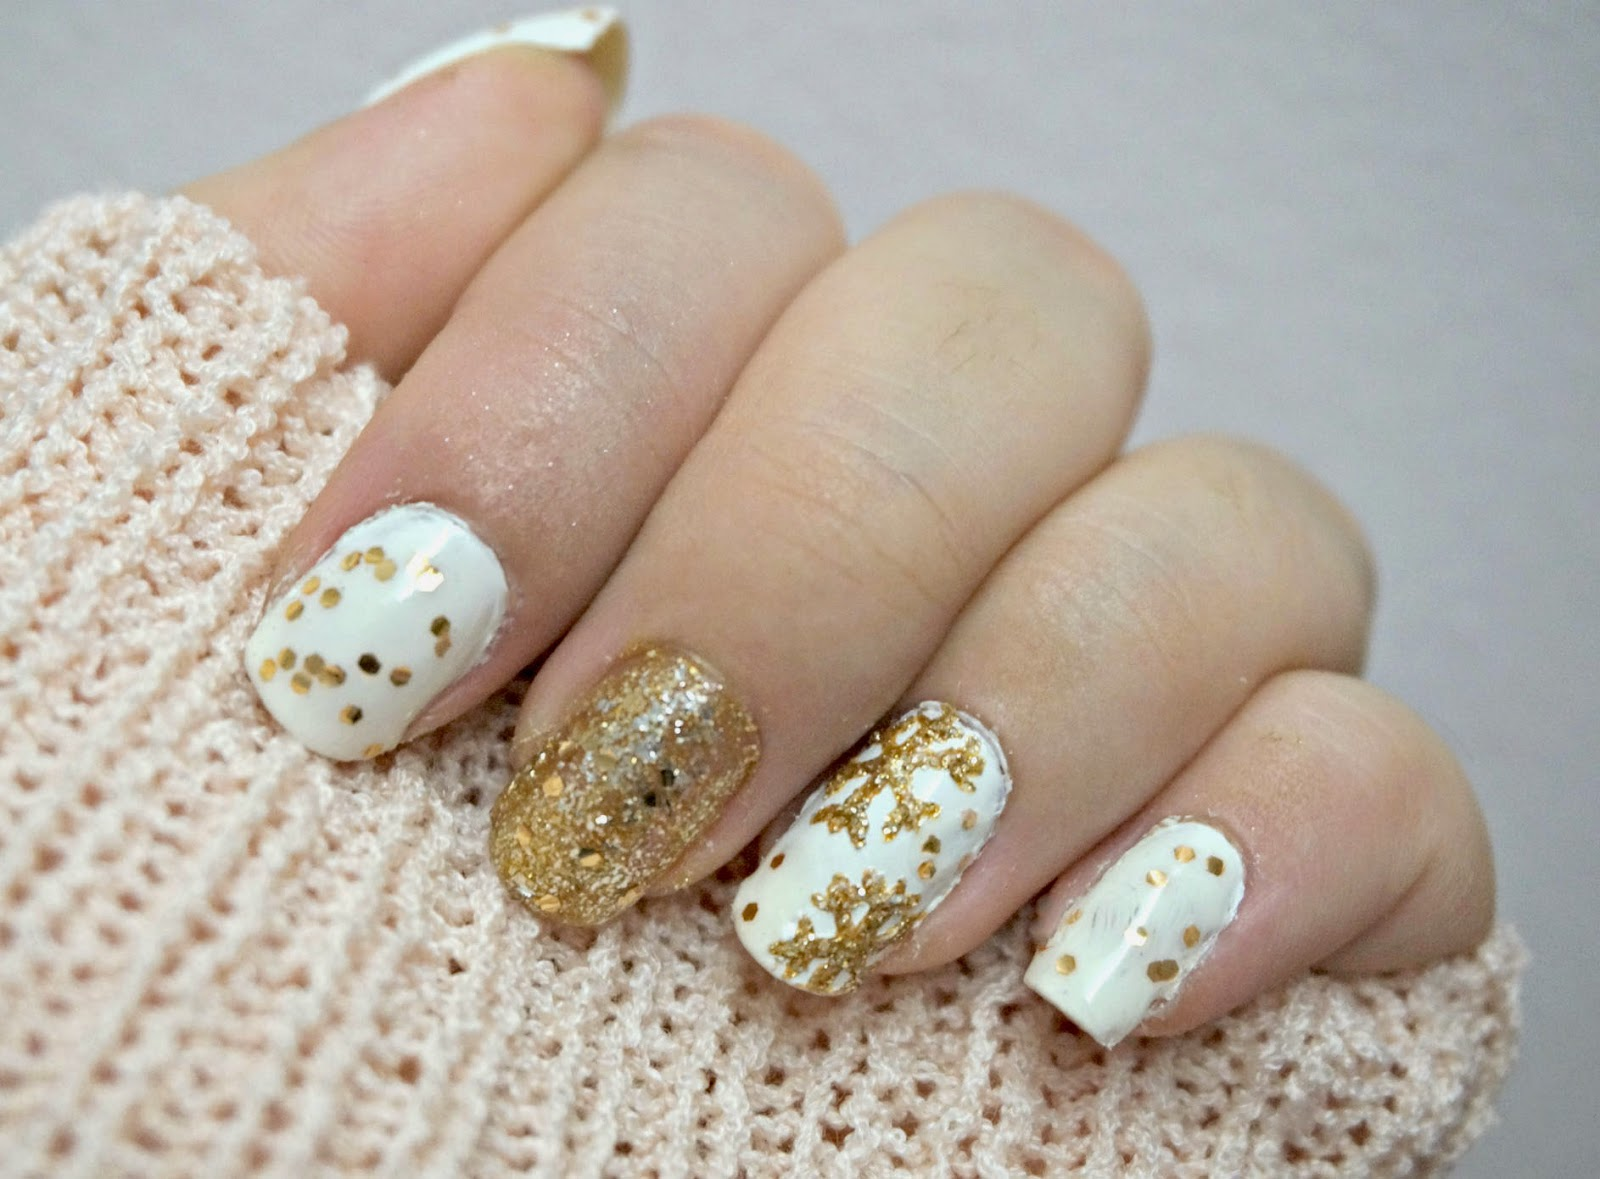 step 4 add the gold glitter big size on the other nails to make it look festive and cute - White Christmas Nails